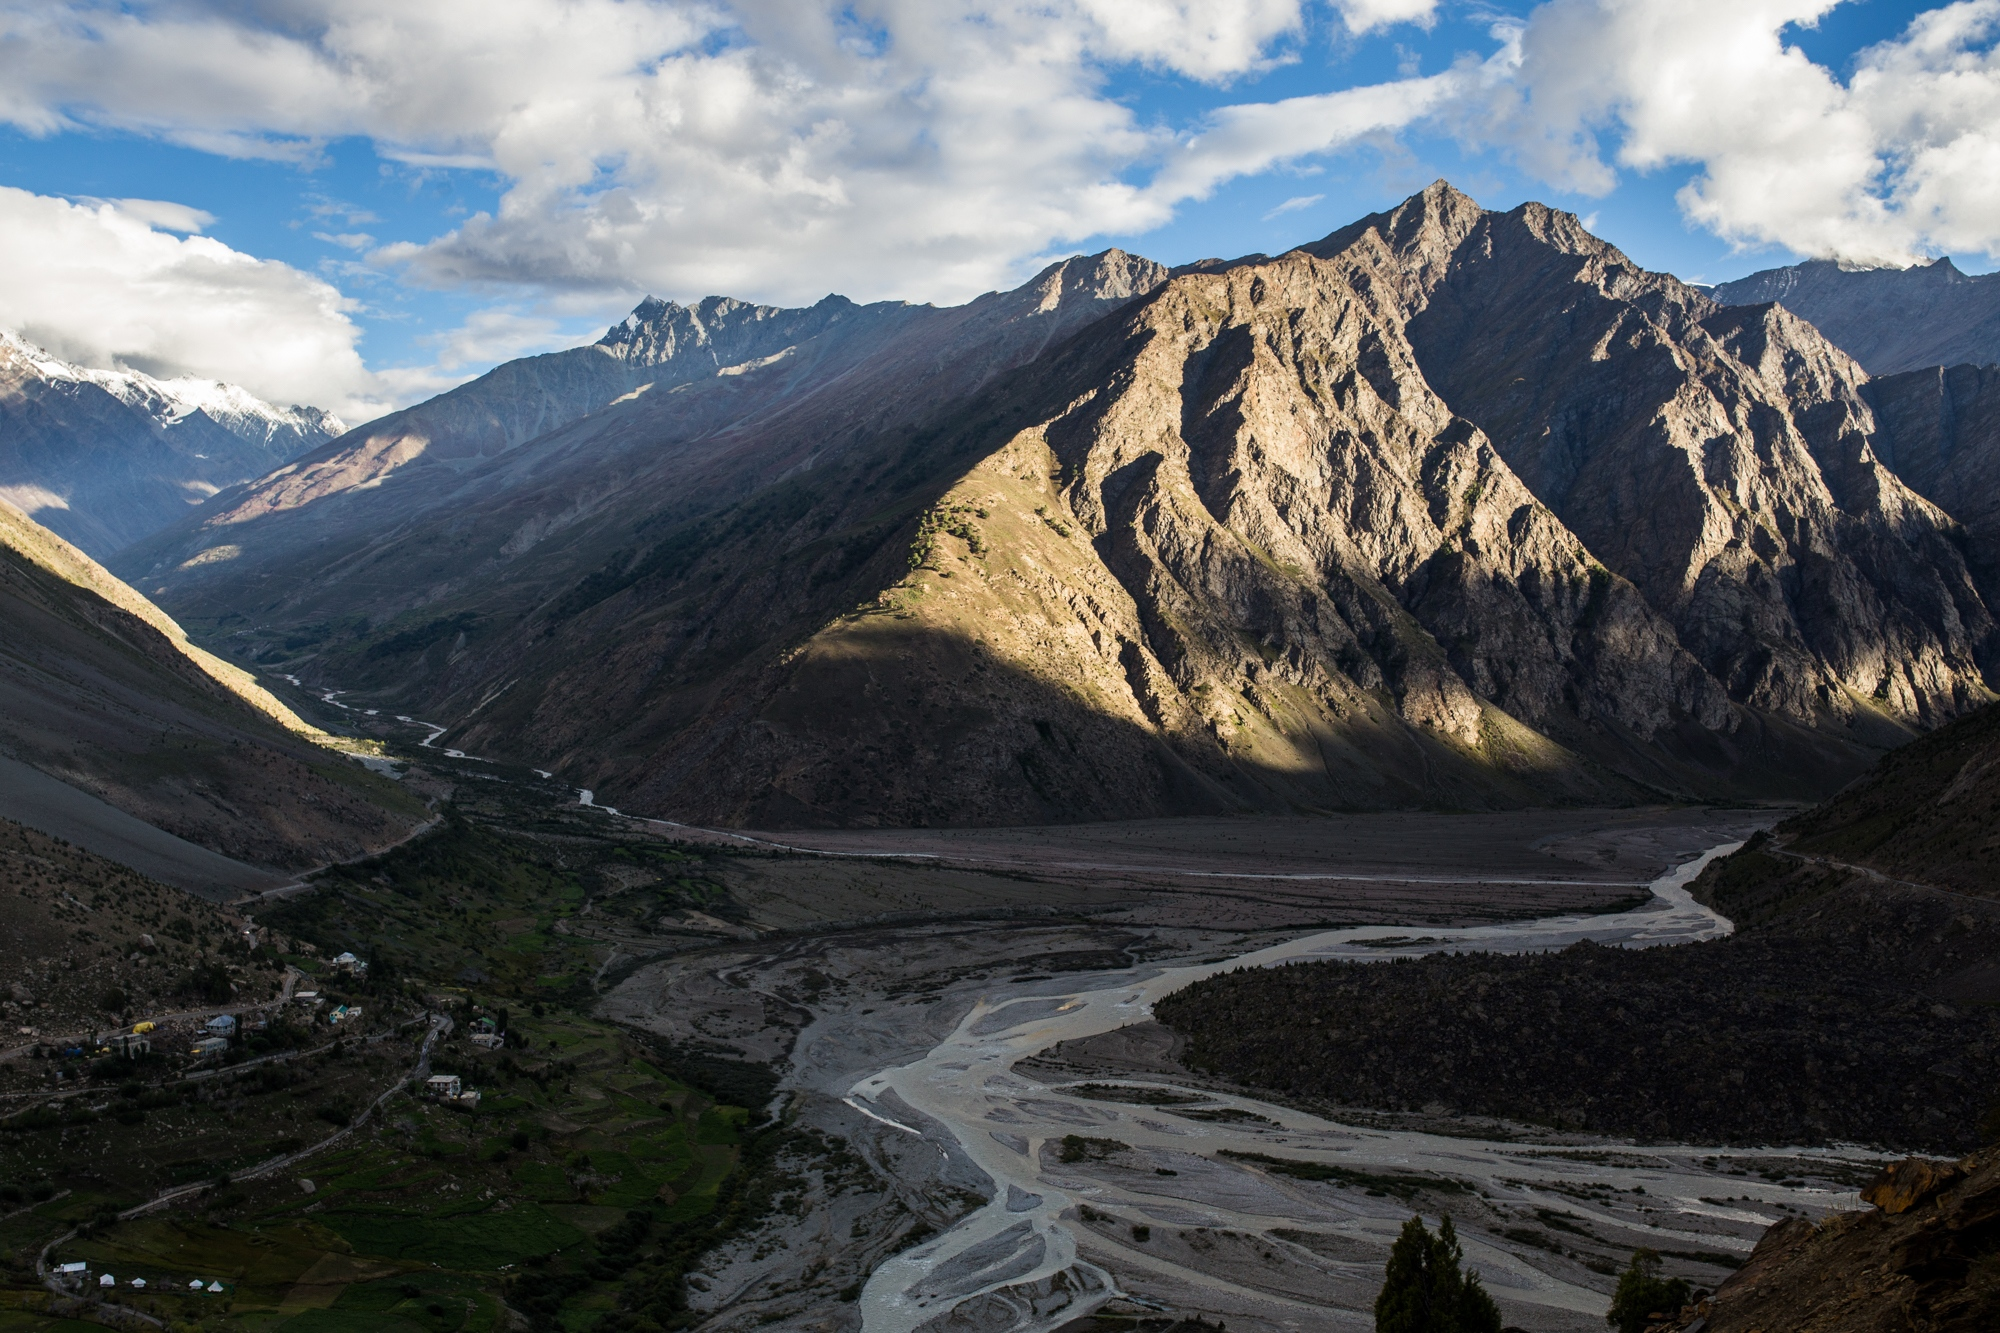 Originating from high Himalayan glaciers, the confluence of two rivers in India's Lahaul Valley. Billions of people across Asia depend on rivers like these for their main source of water.